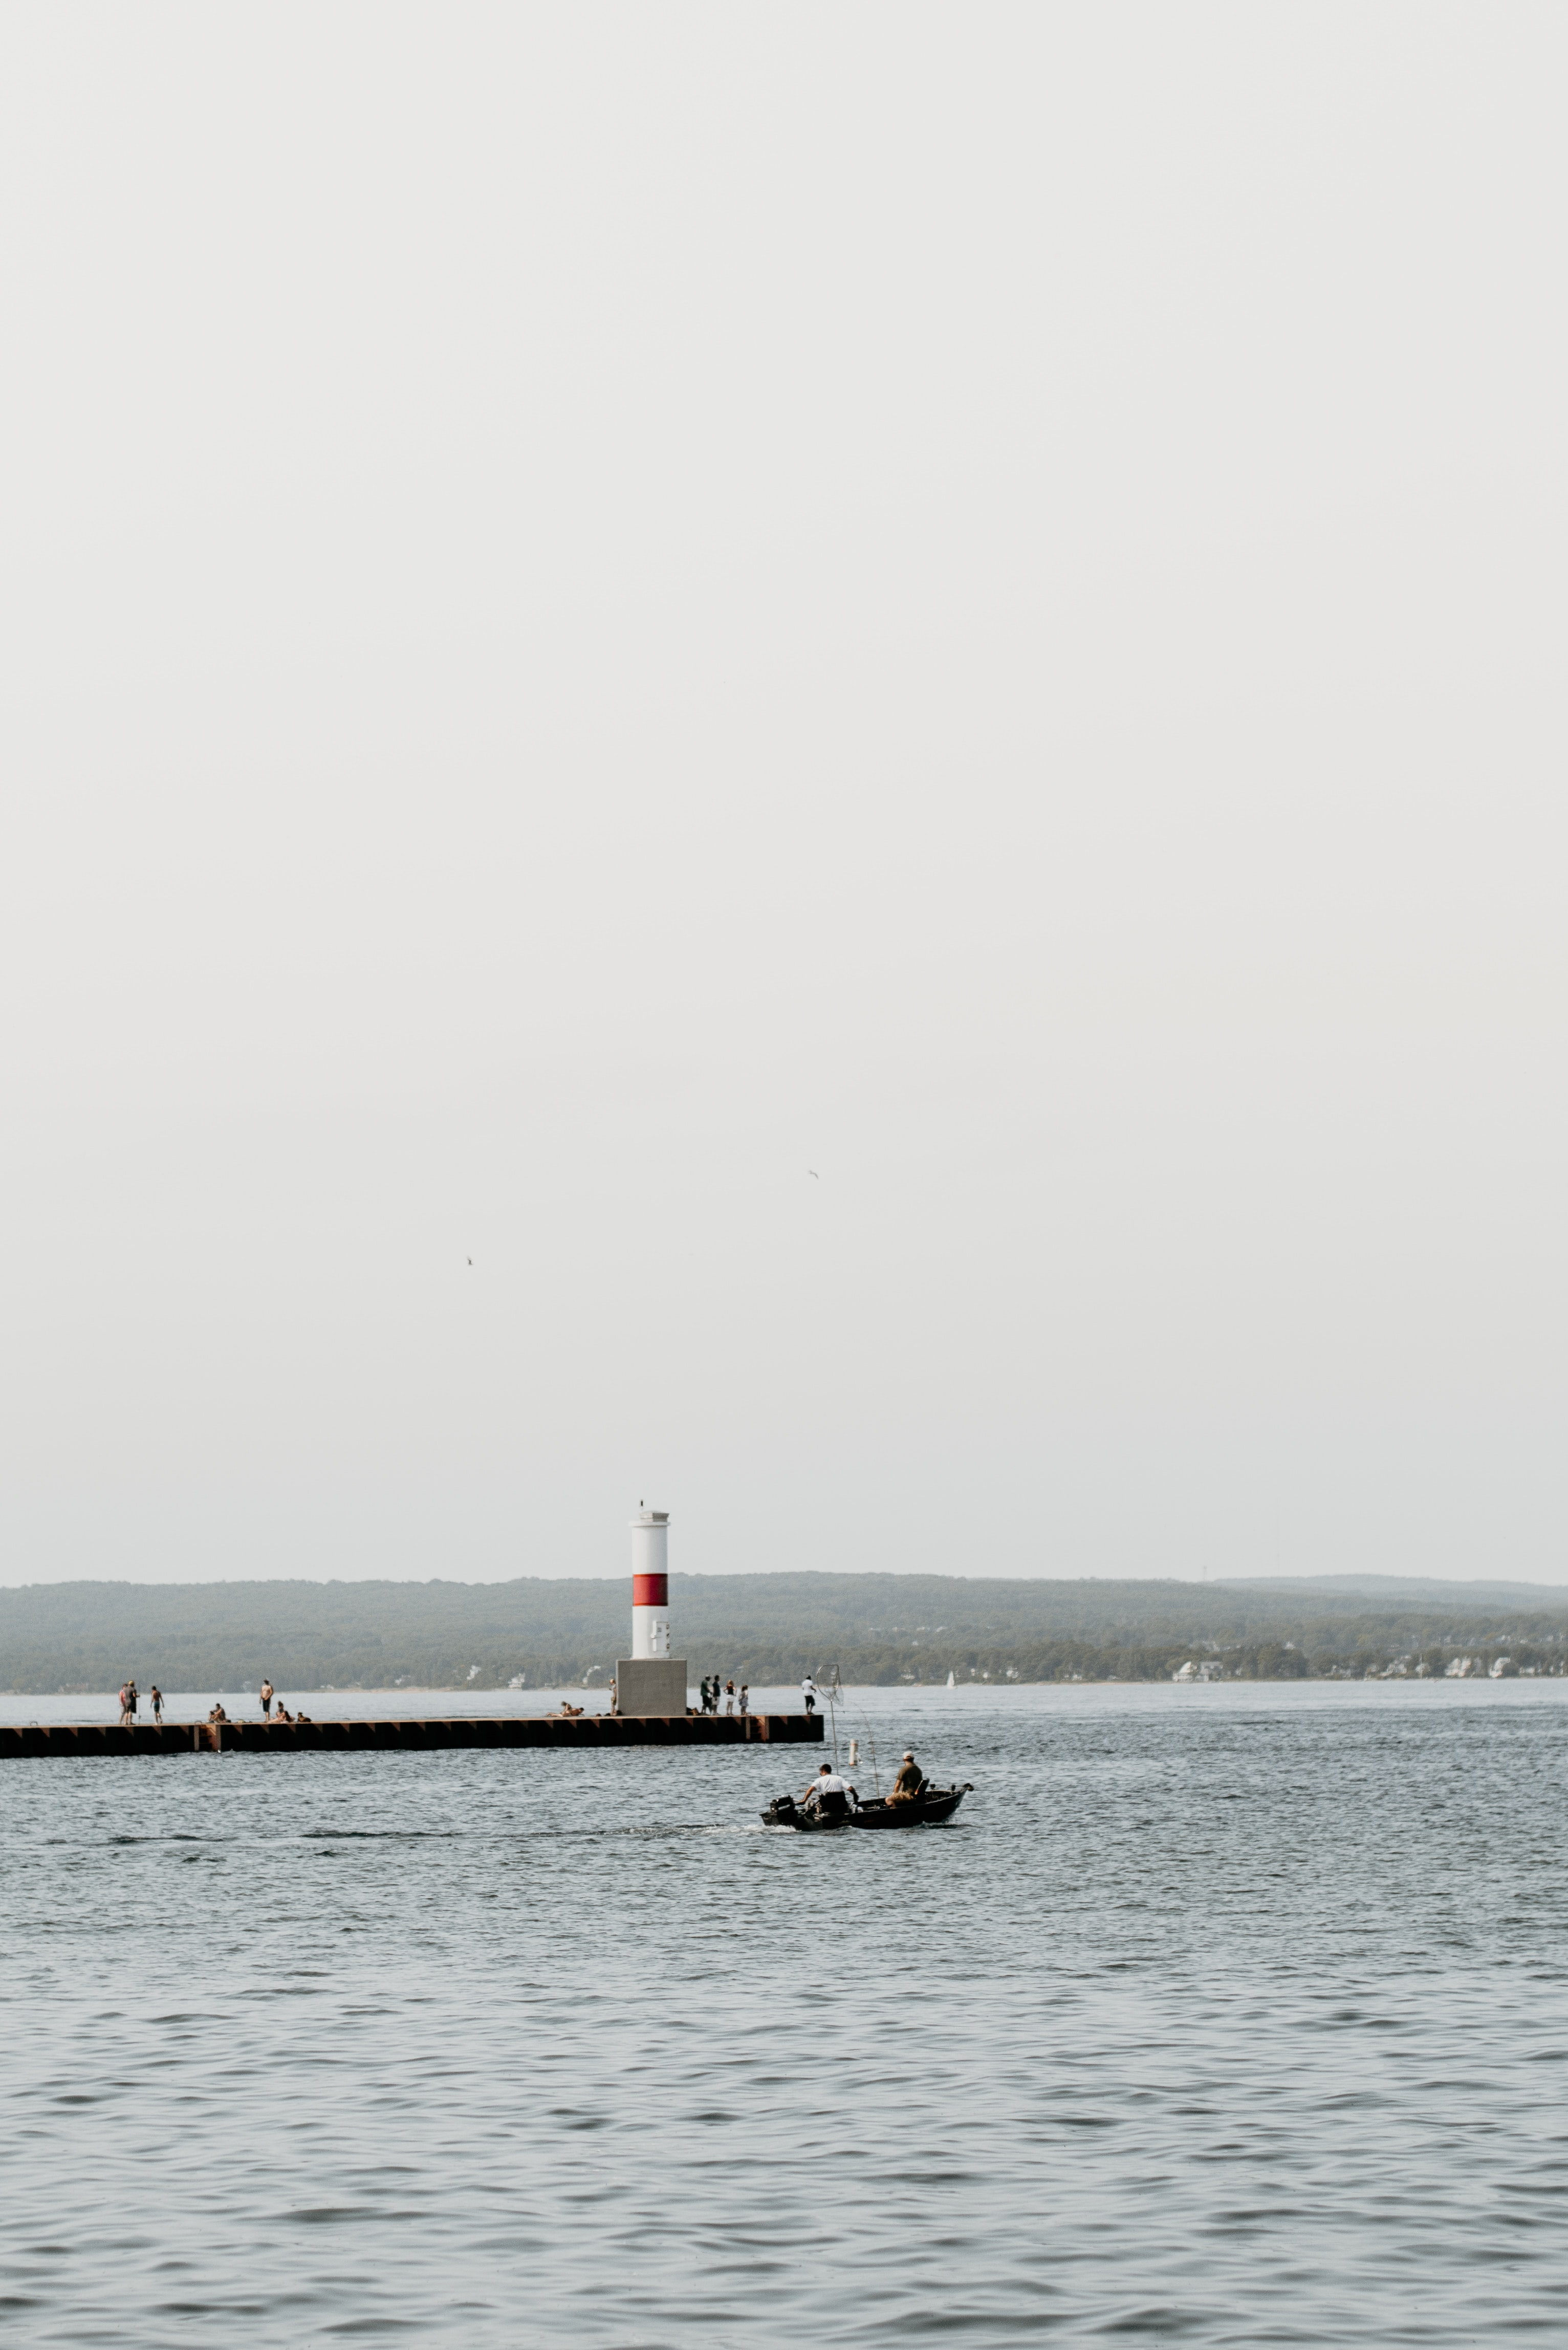 boat on body of water with lighthouse background